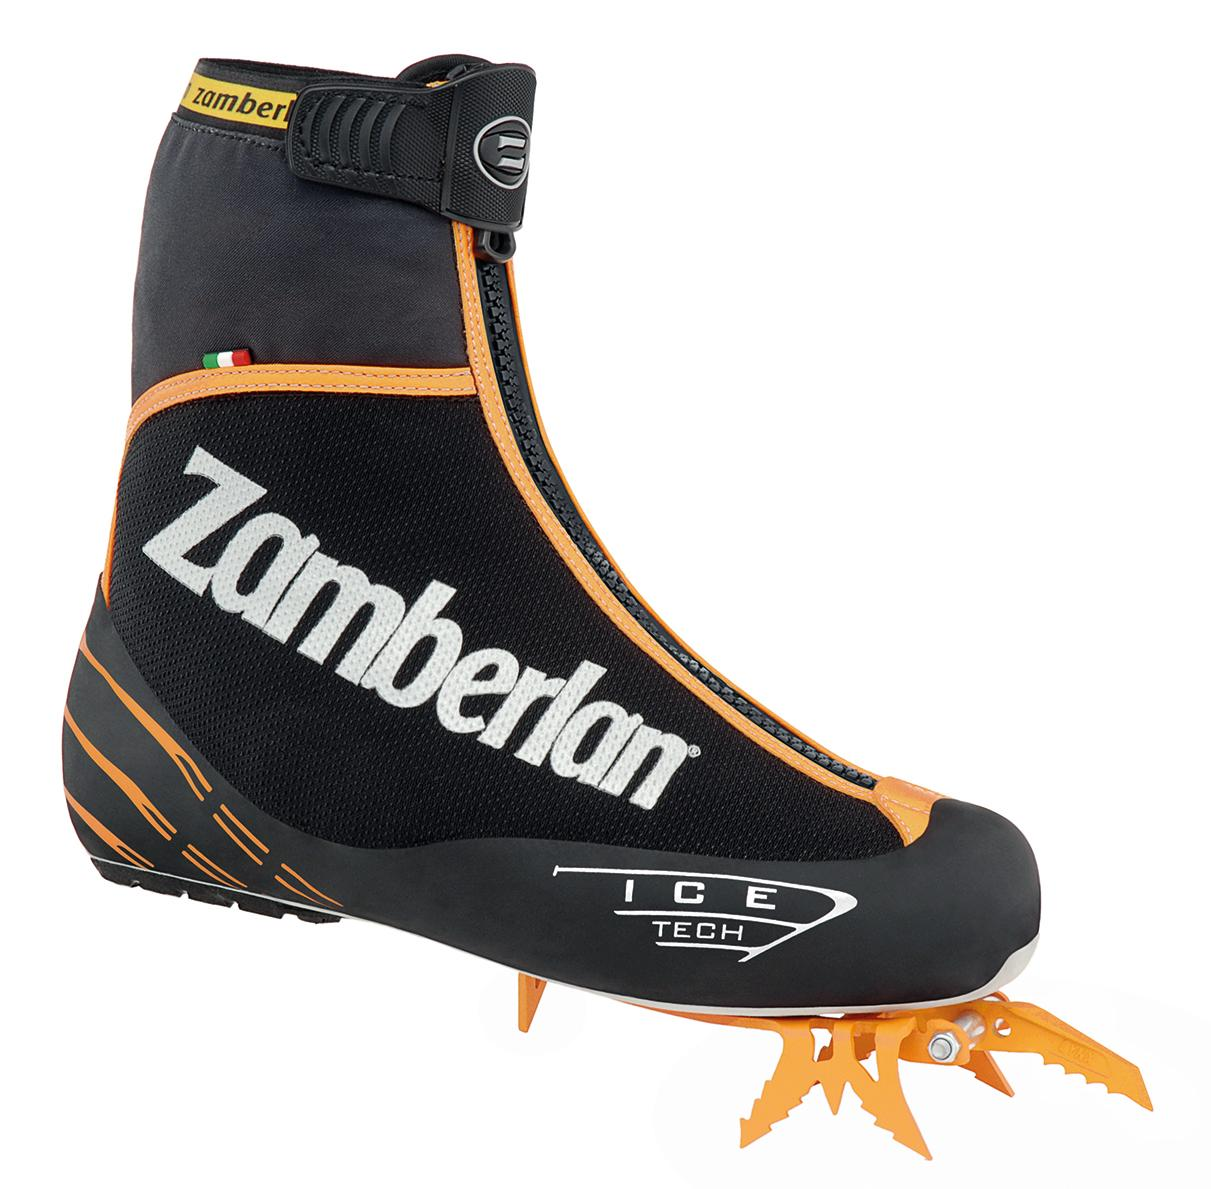 2000 ICE TECH EVO RR    -     Bergschuhe   -   Black/Orange